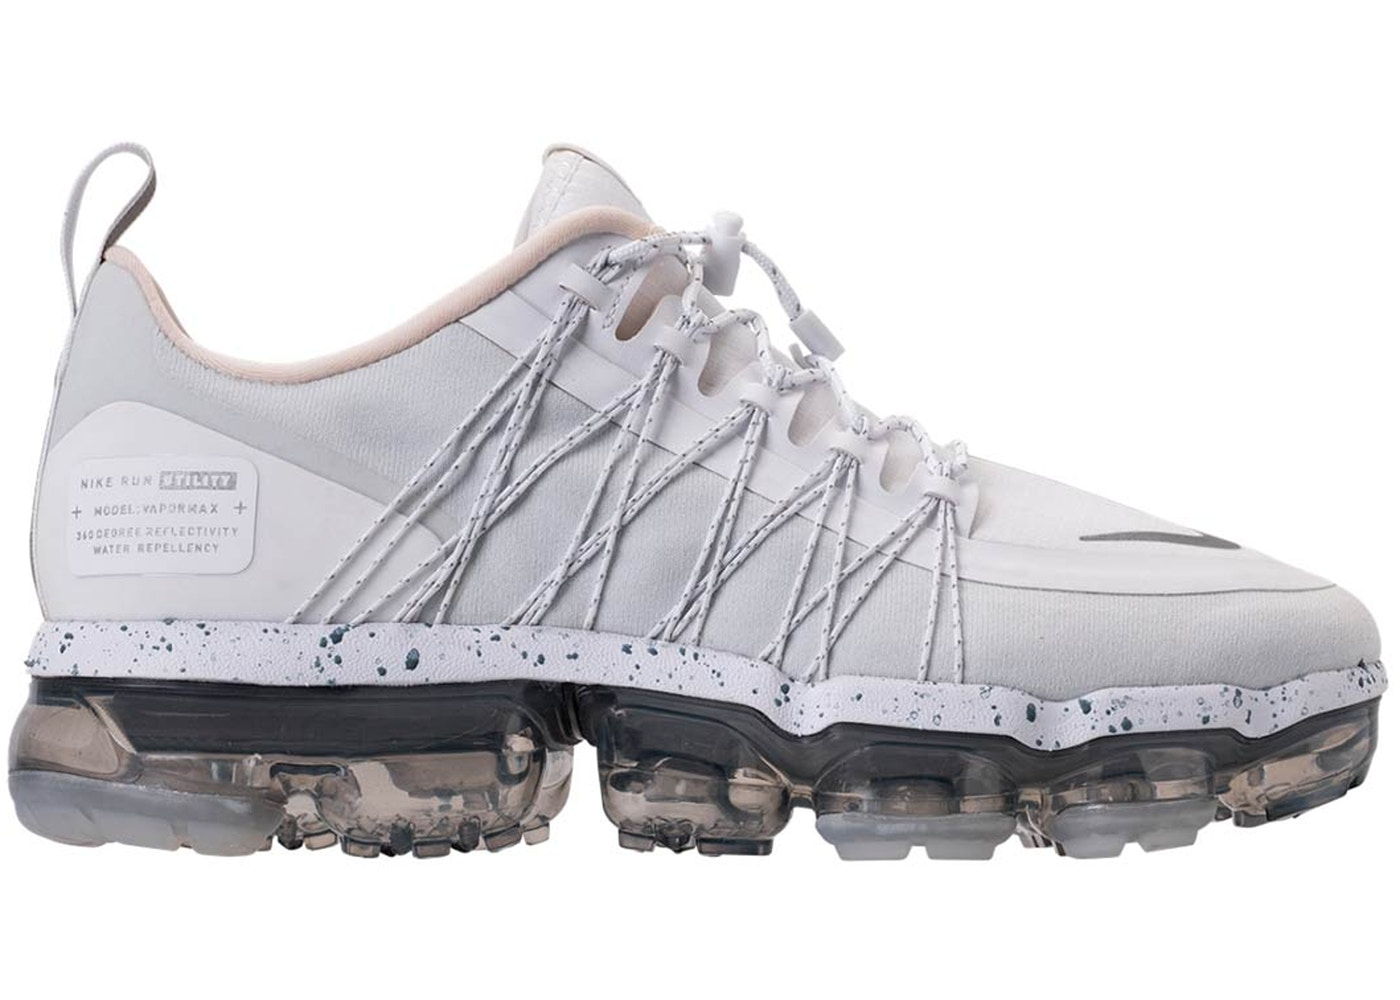 9e4820a5a1b0 Air VaporMax Run Utility White Reflect Silver (W) - AQ8811-100